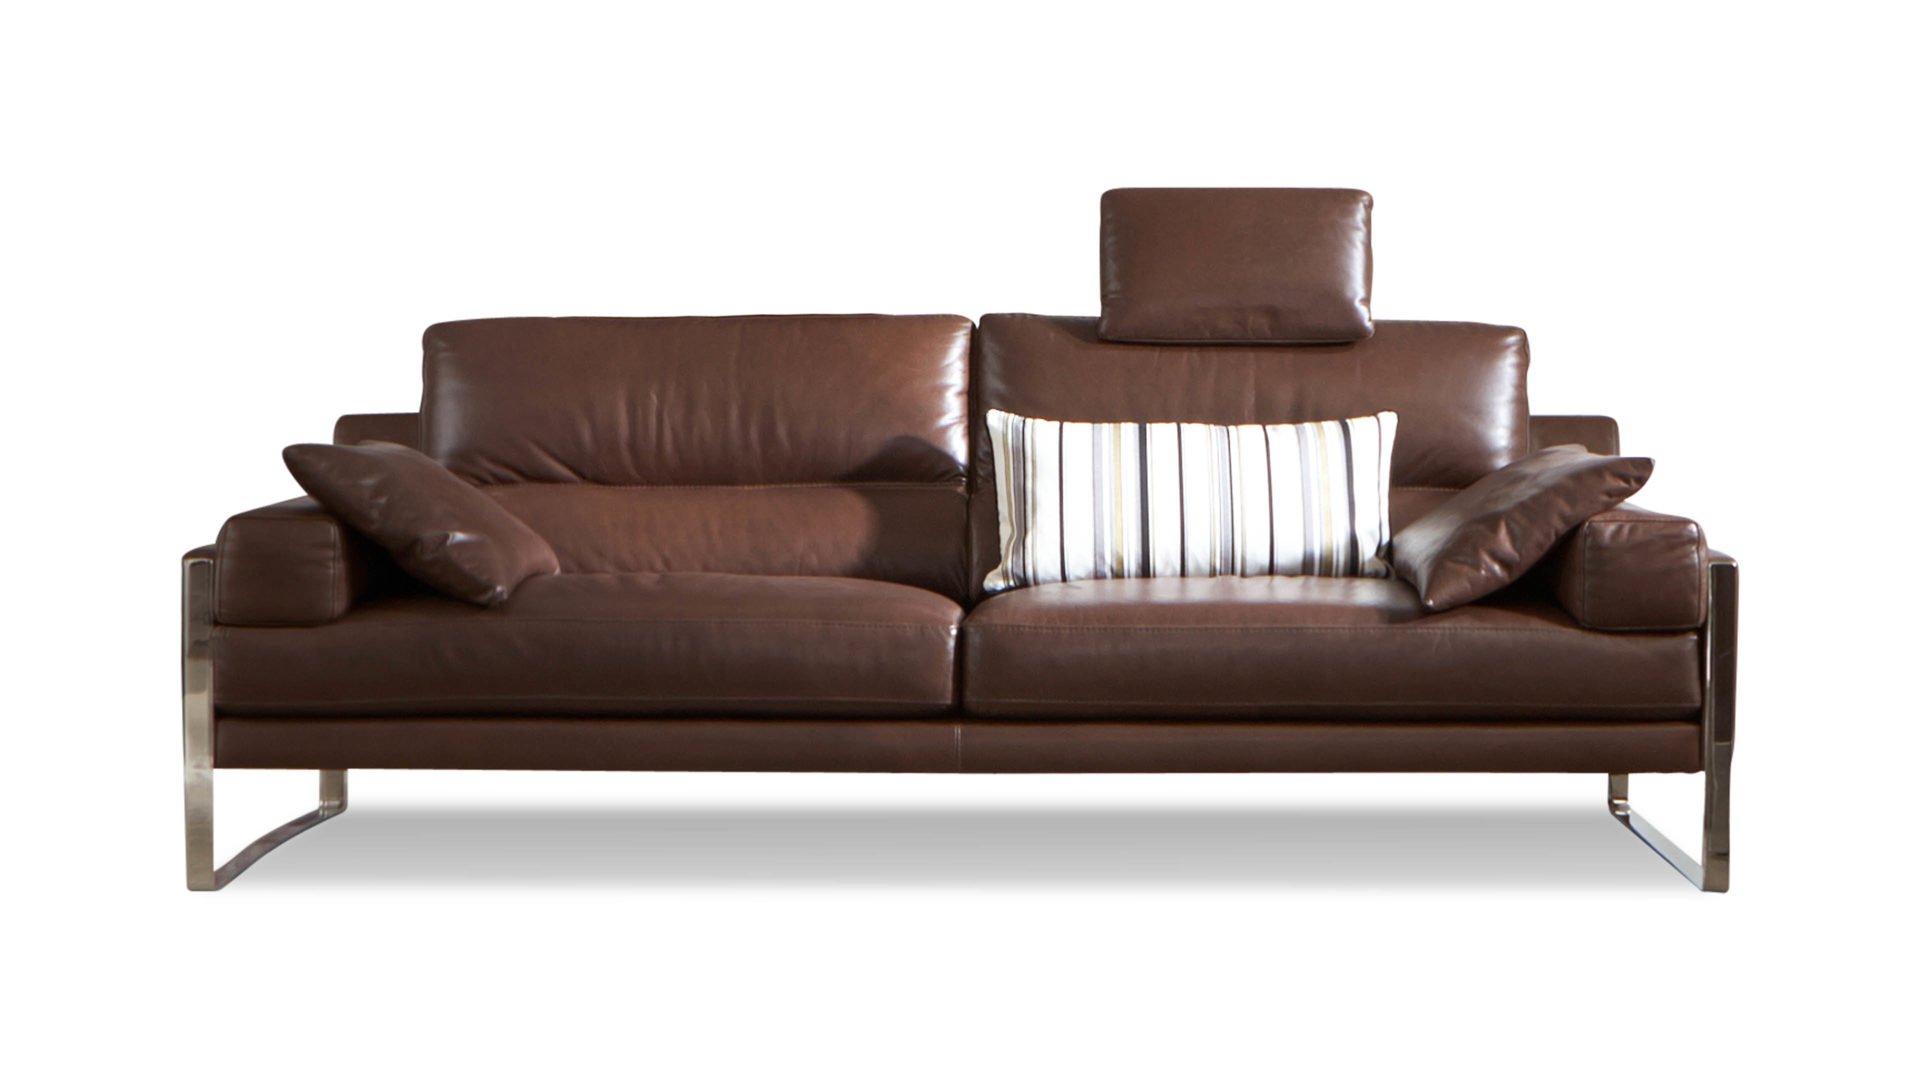 Awesome Blob Ubergroses Lila Ledersofa Ditre Italia Pictures ...